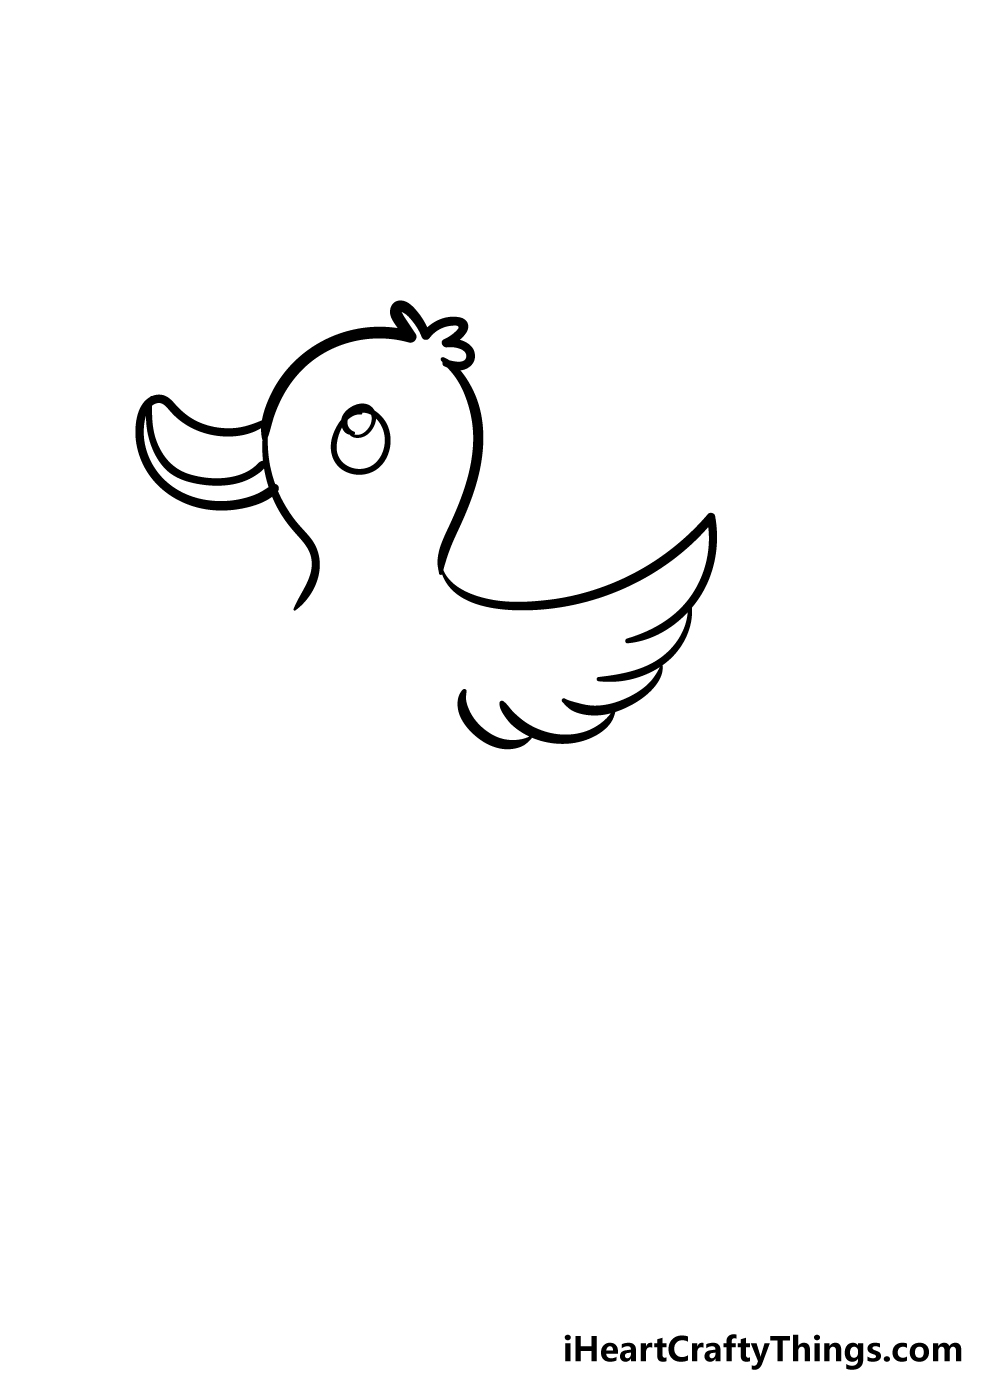 duck drawing step 4